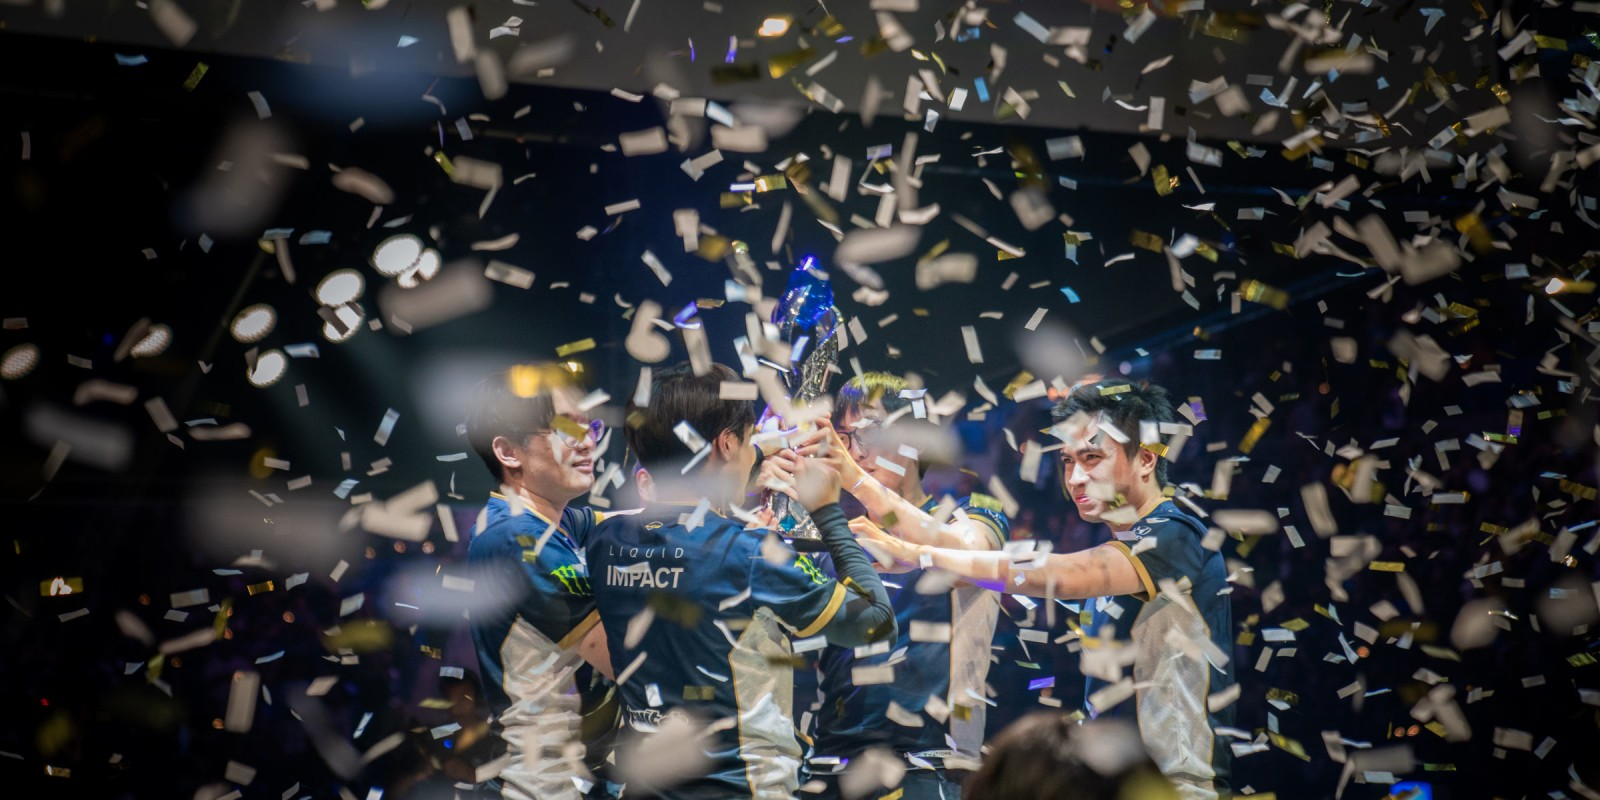 Photos of Team Liquid's League of Legends team playing in the LCS (League Championship Series) Spring Split finals. They won the series 3-2 over TSM after being down 0-2 and completing the reverse sweep.